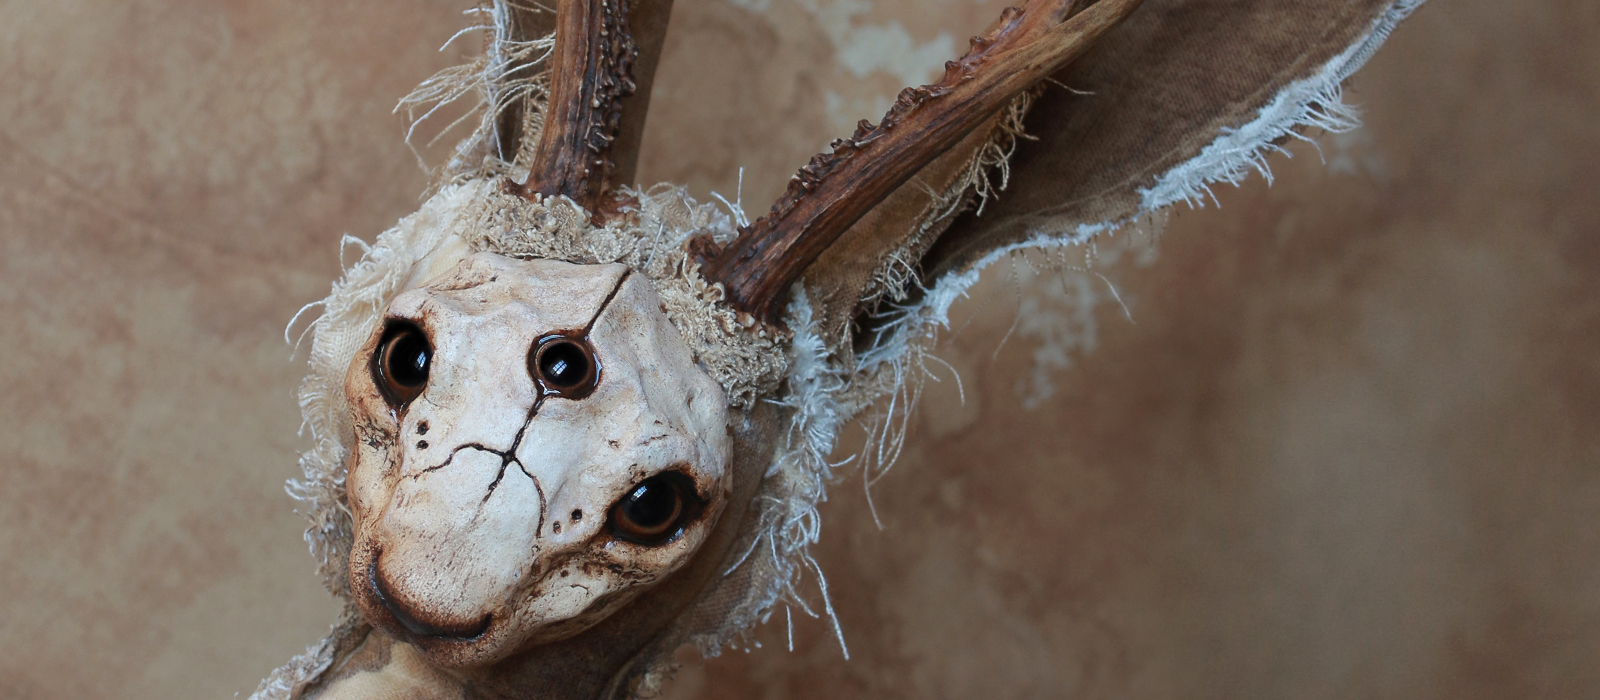 Three-eyed Jackalope